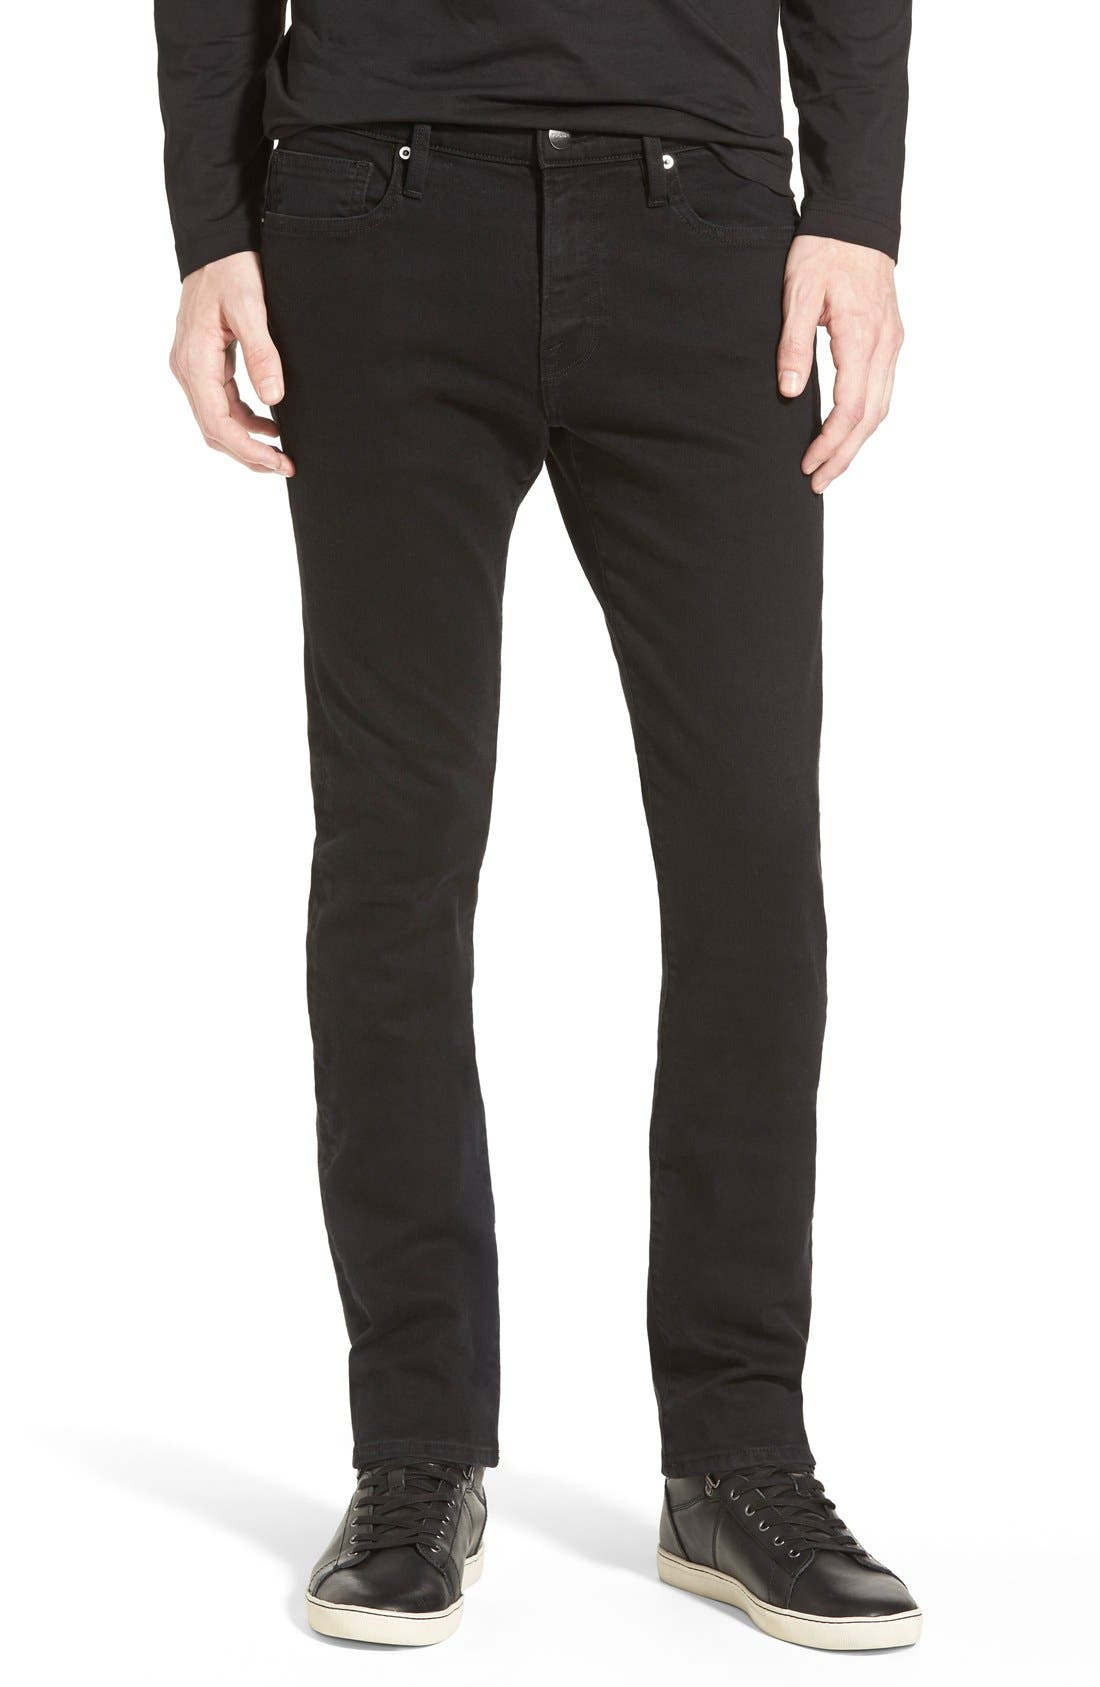 Jeans skinny fit homme